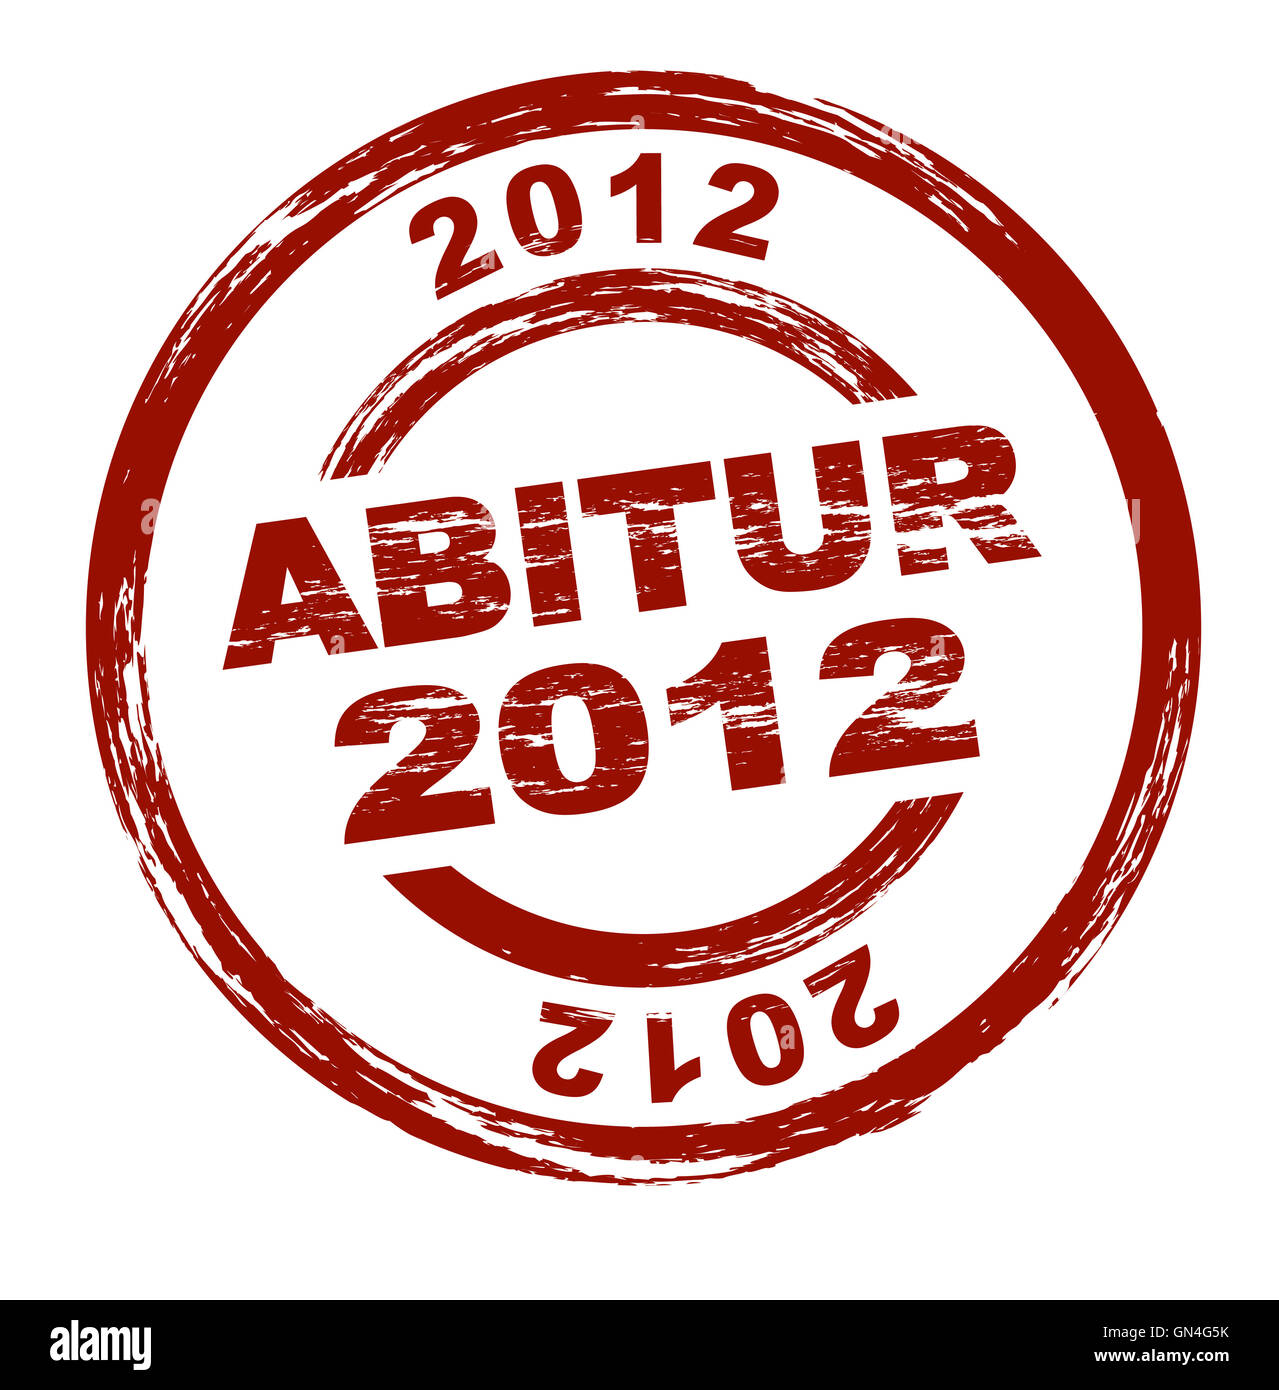 Stamp - Abitur 2012 (A-levels 2012) - Stock Image